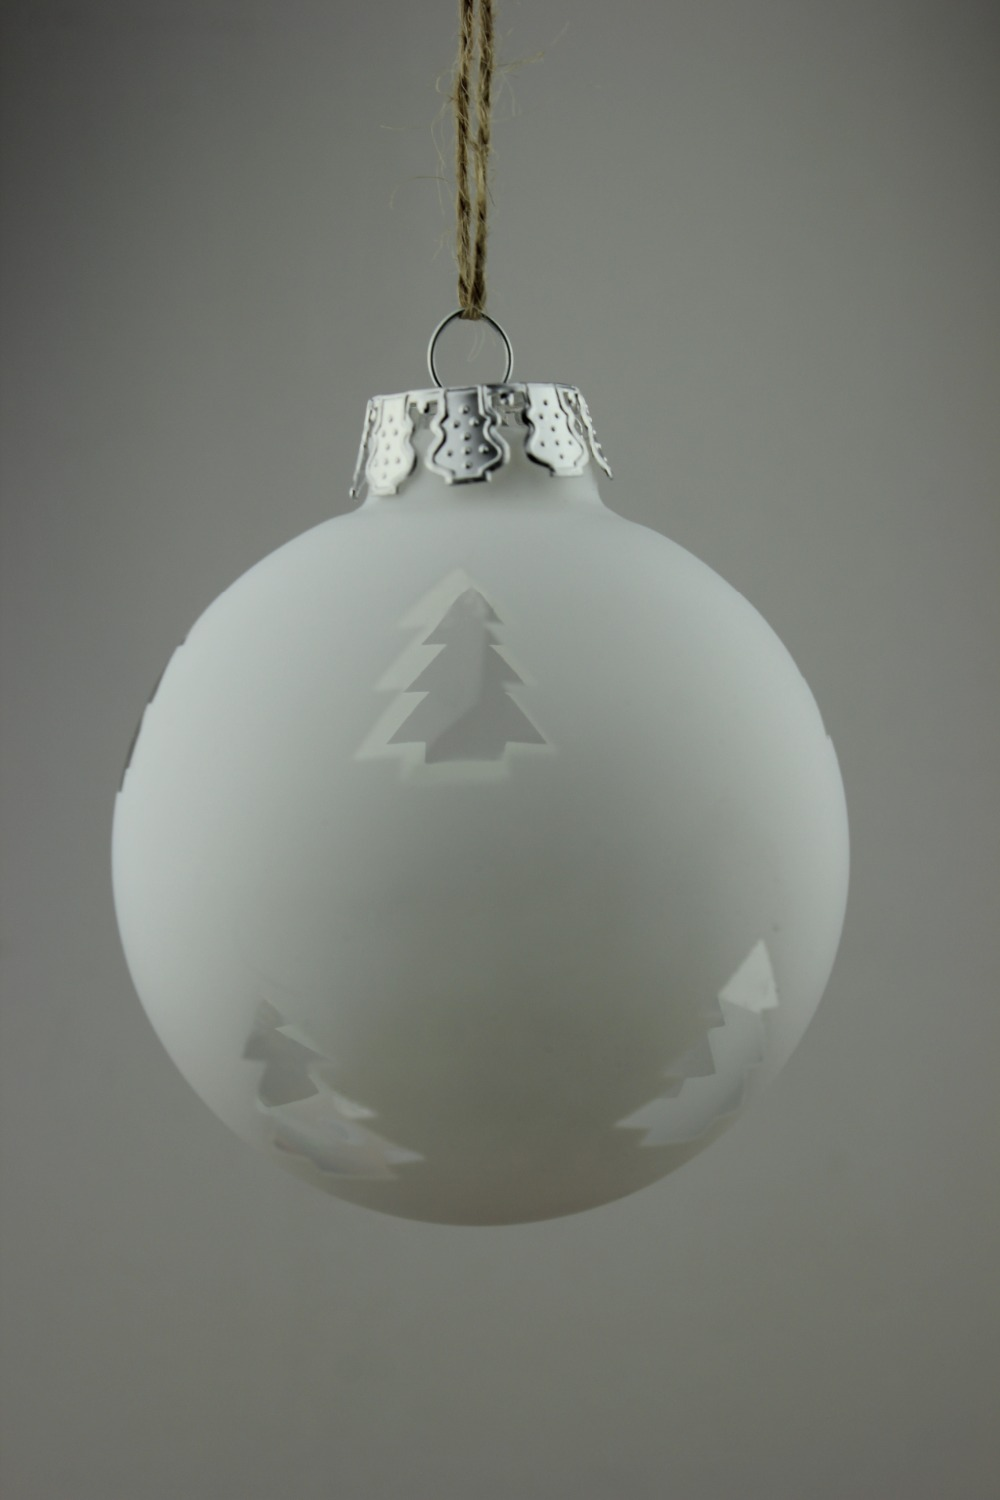 Frosted christmas ornaments - Frosted White Christmas Ornament Balls Glass Xmas Tree Pendants Wedding Decoration Bauble X 4 From Reliable Decor Bauble Suppliers On Baoying Yongxin Glass